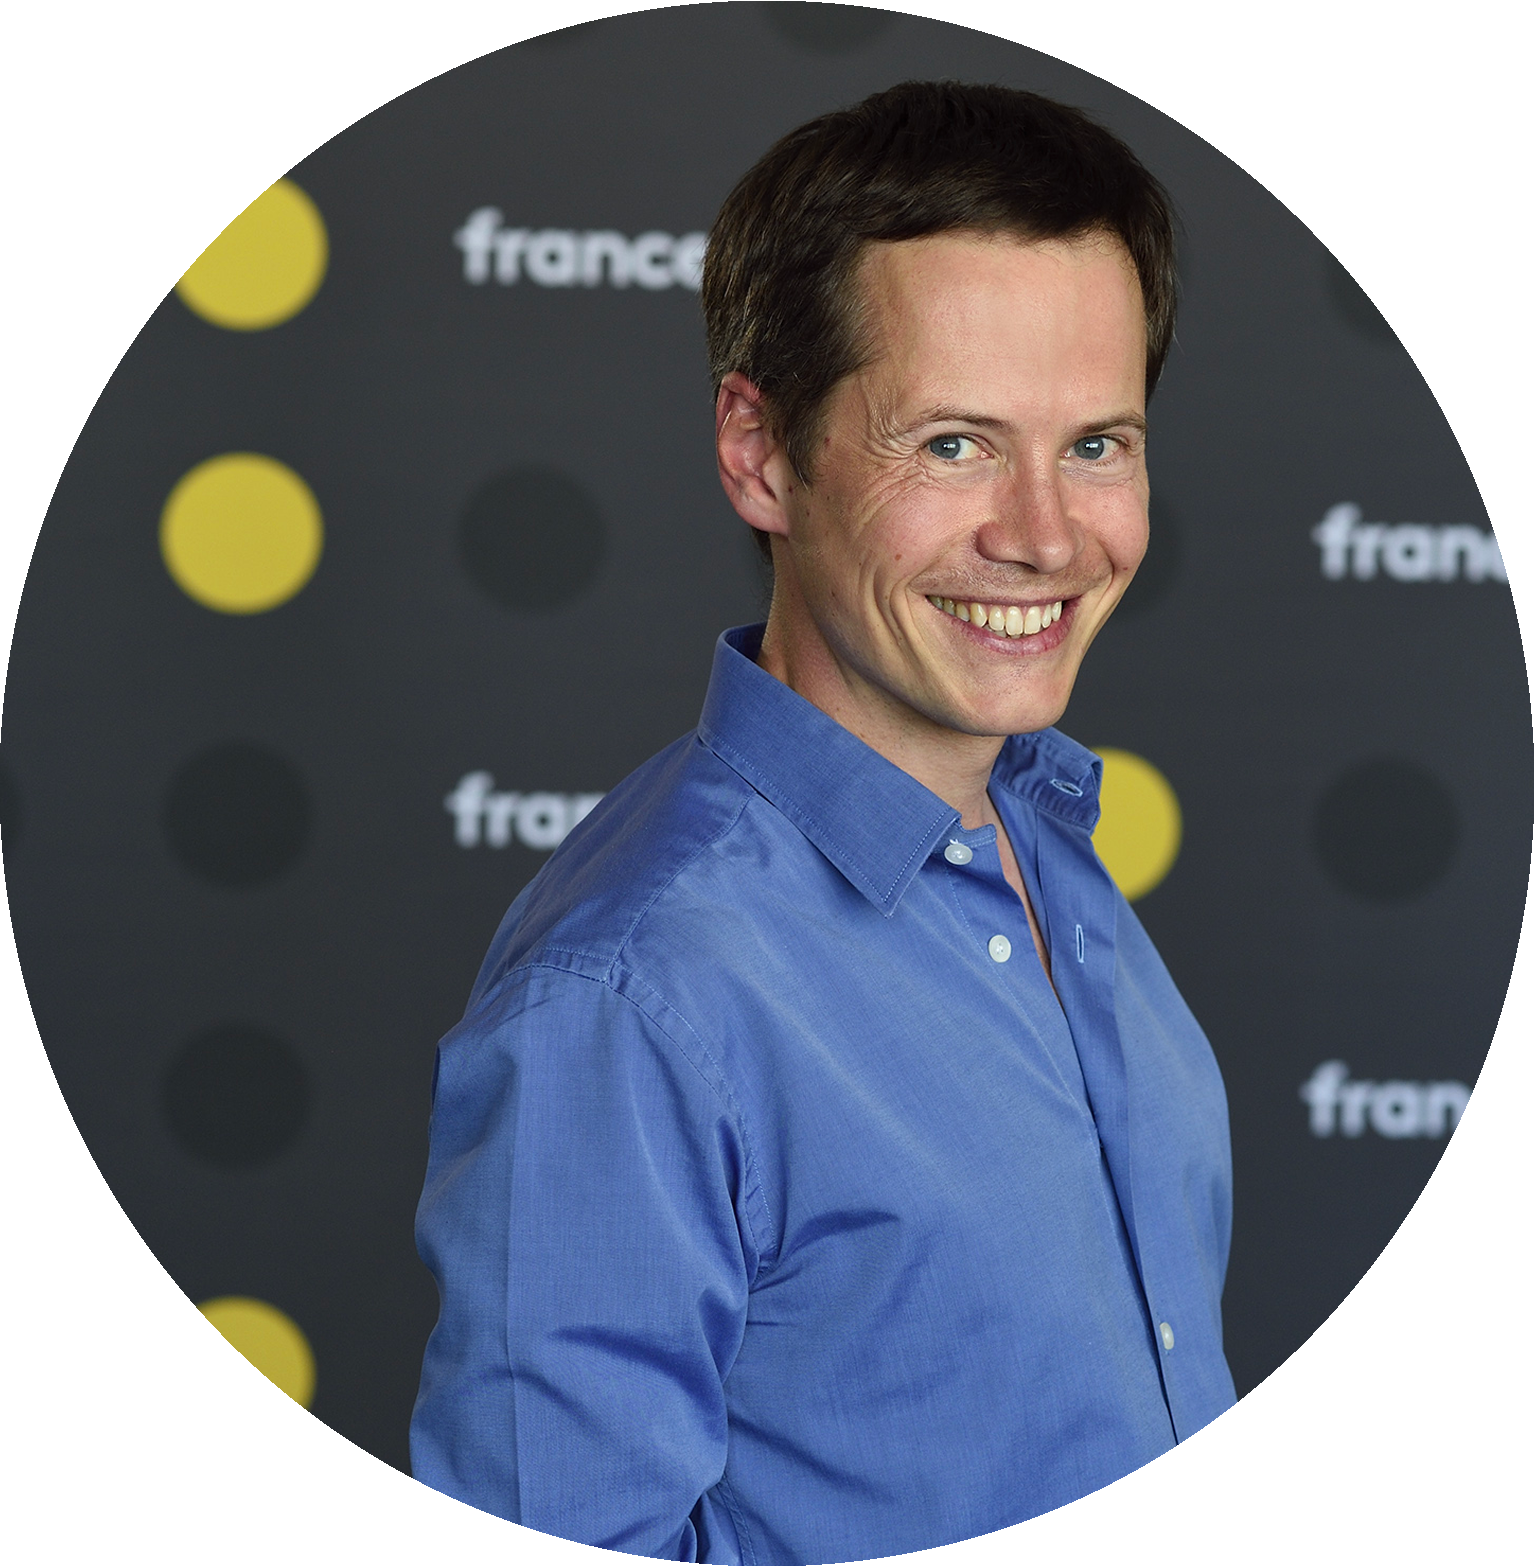 franceinfo / Radio france / Christophe Abramowitz